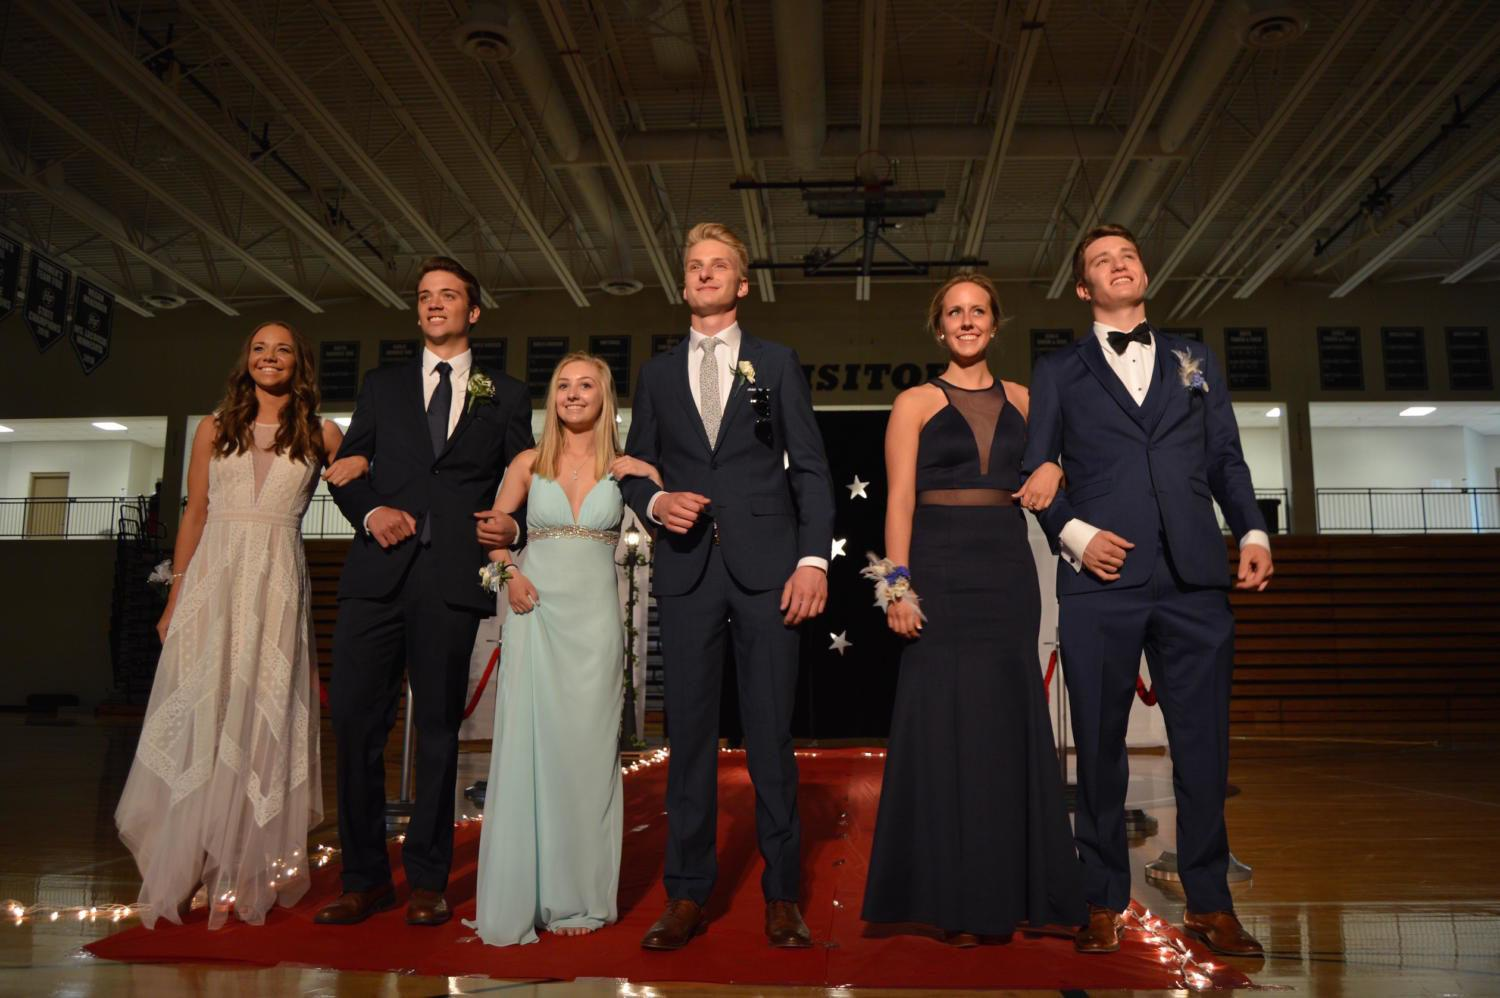 Slideshow: Grand March